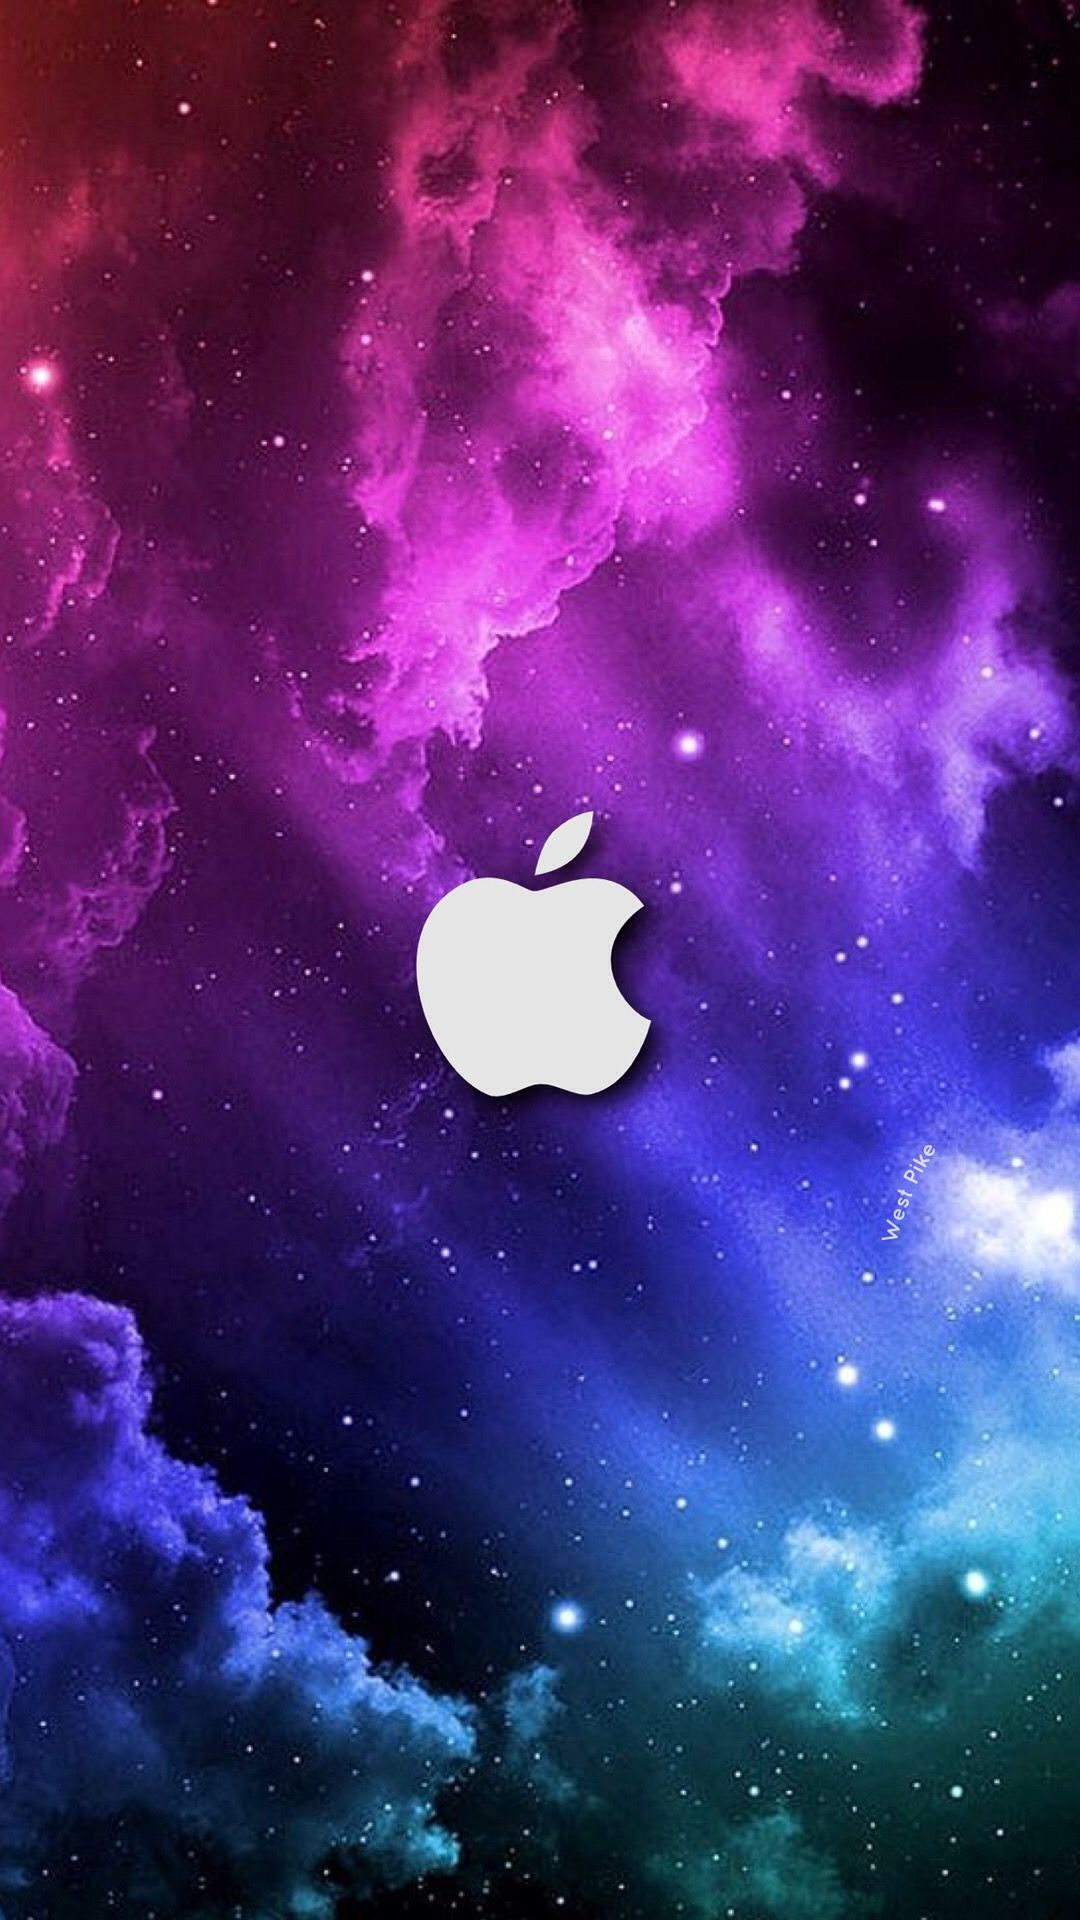 Pin By Izzy On Wallpapers Apple Logo Wallpaper